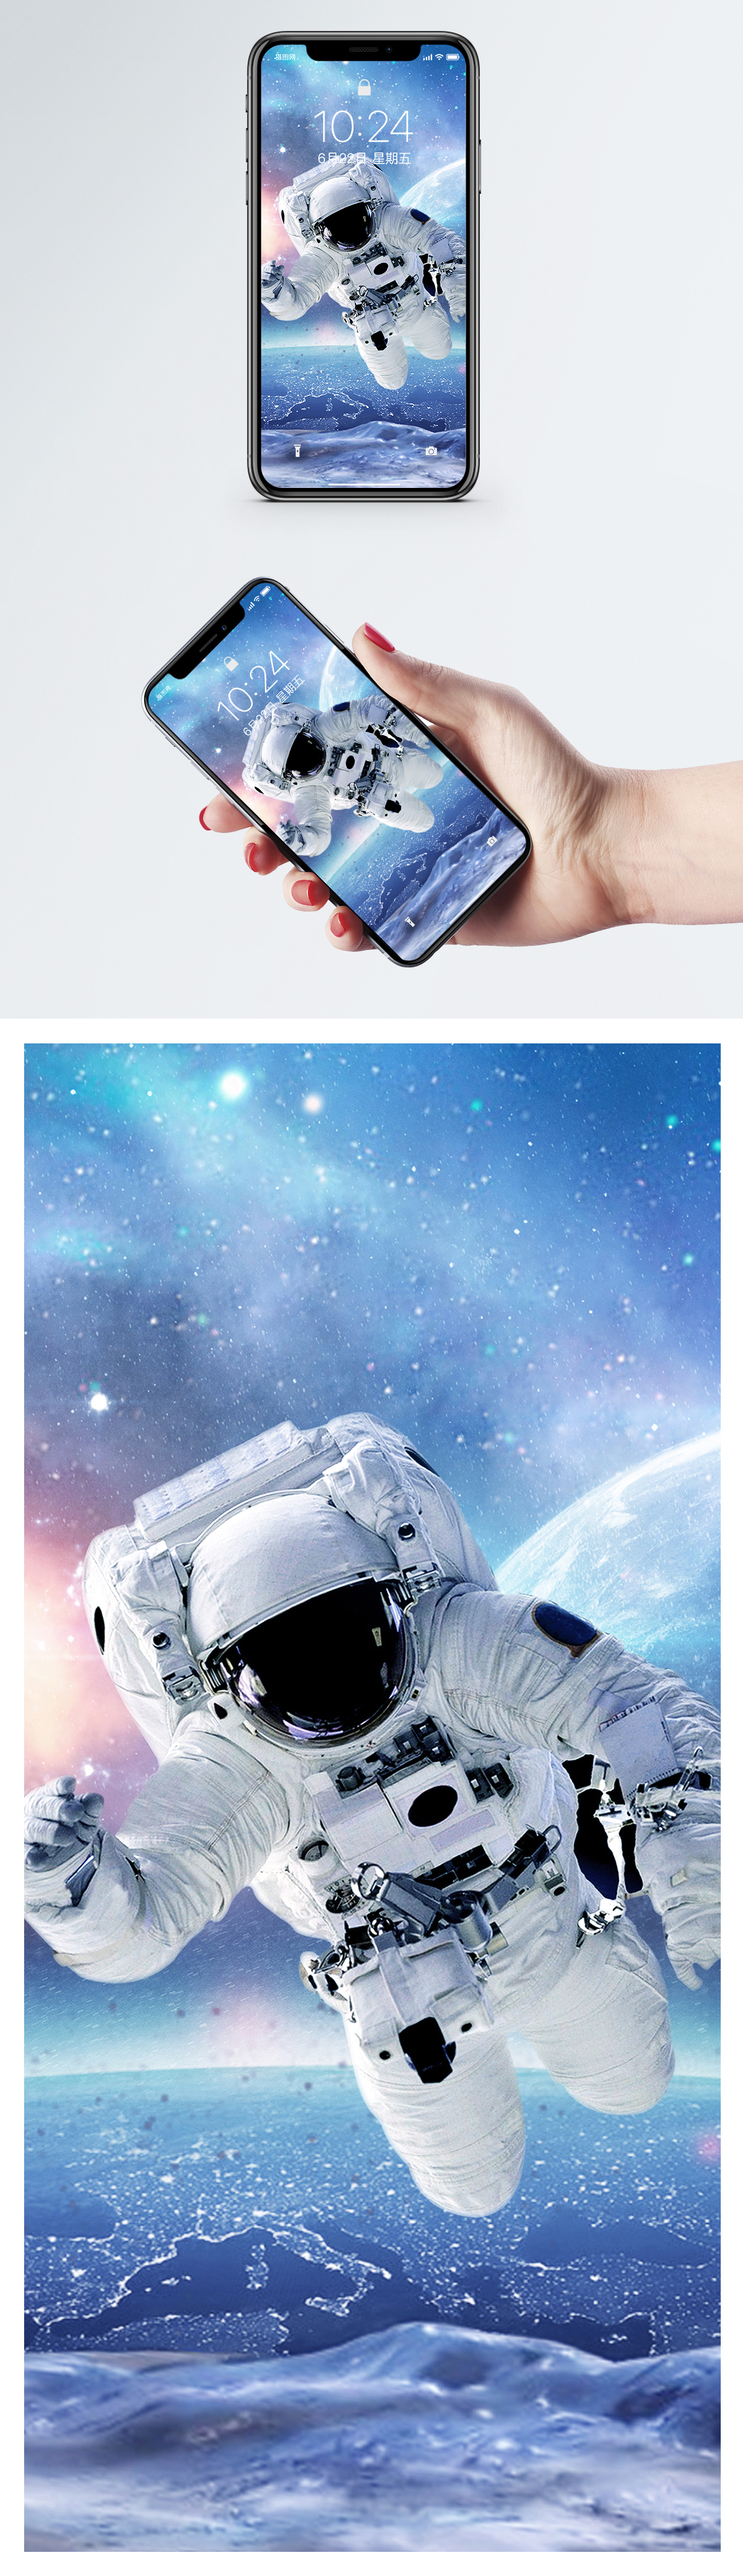 Space Astronaut Cell Phone Wallpaper Backgrounds Images Free Download 400957005 Lovepik Com